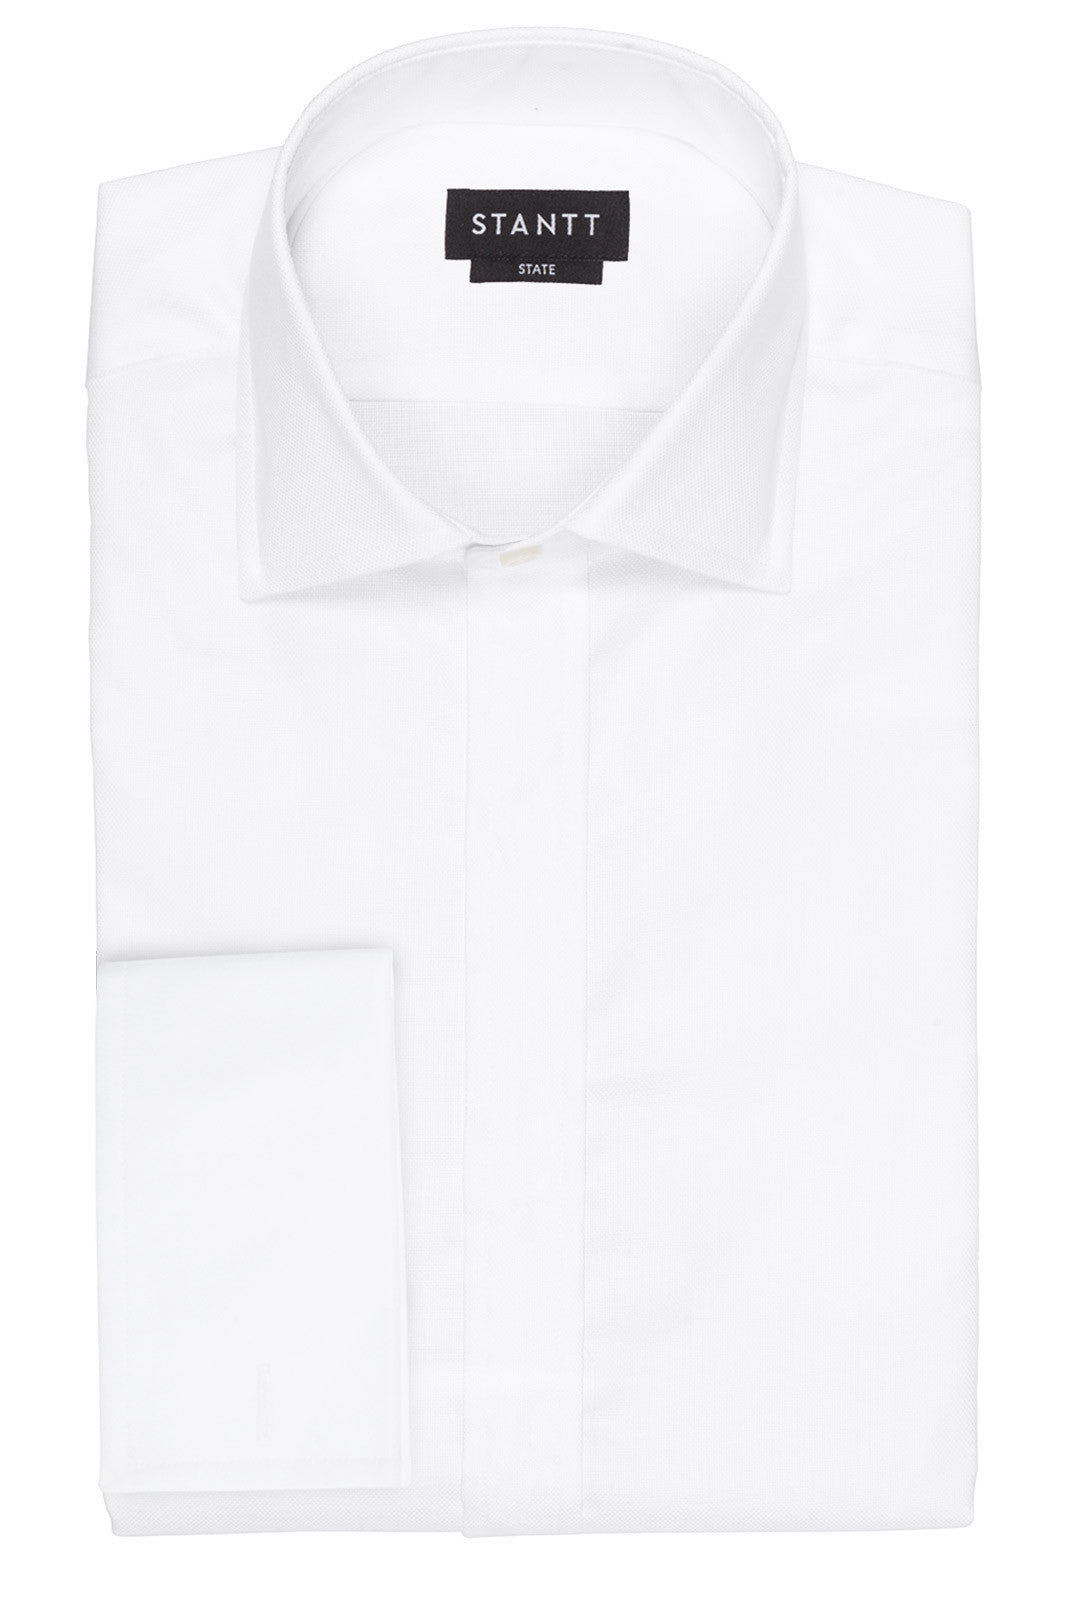 White Royal Oxford Formal Shirt: Modified-Spread Collar, French Cuff, Studded Placket